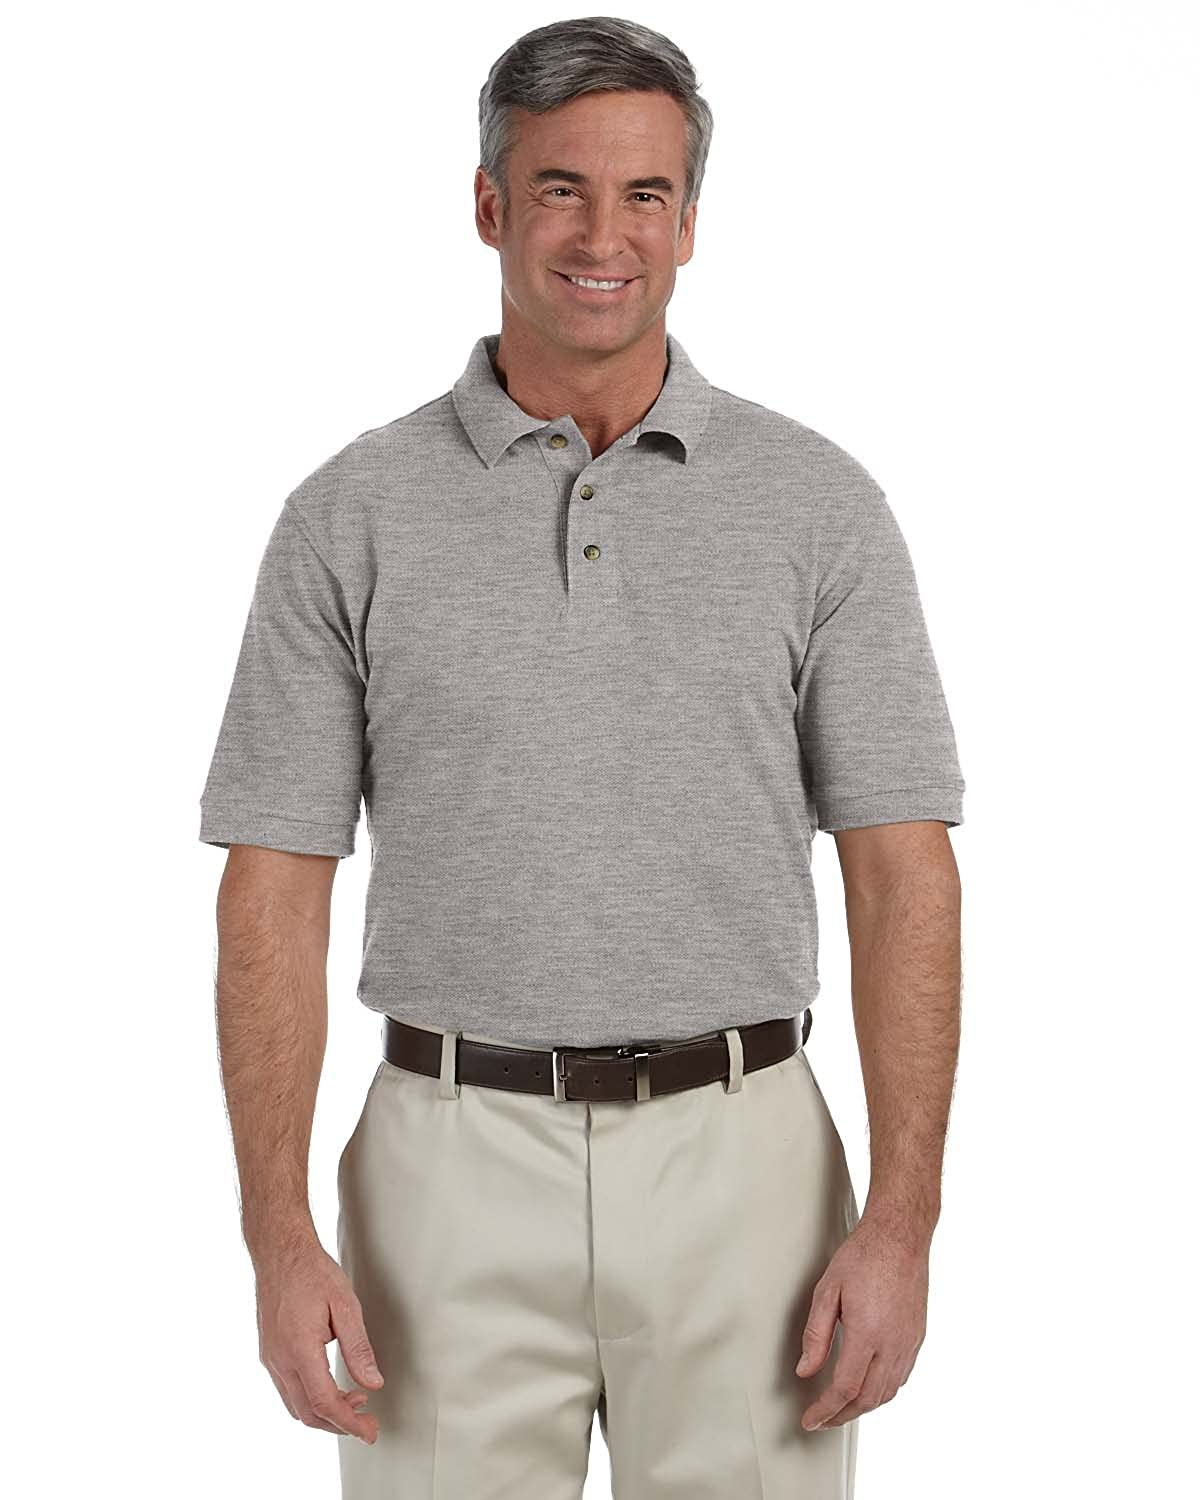 M200 Harriton Mens 6 oz GREY HEATHER Ringspun Cotton Piqu/é Short-Sleeve Polo